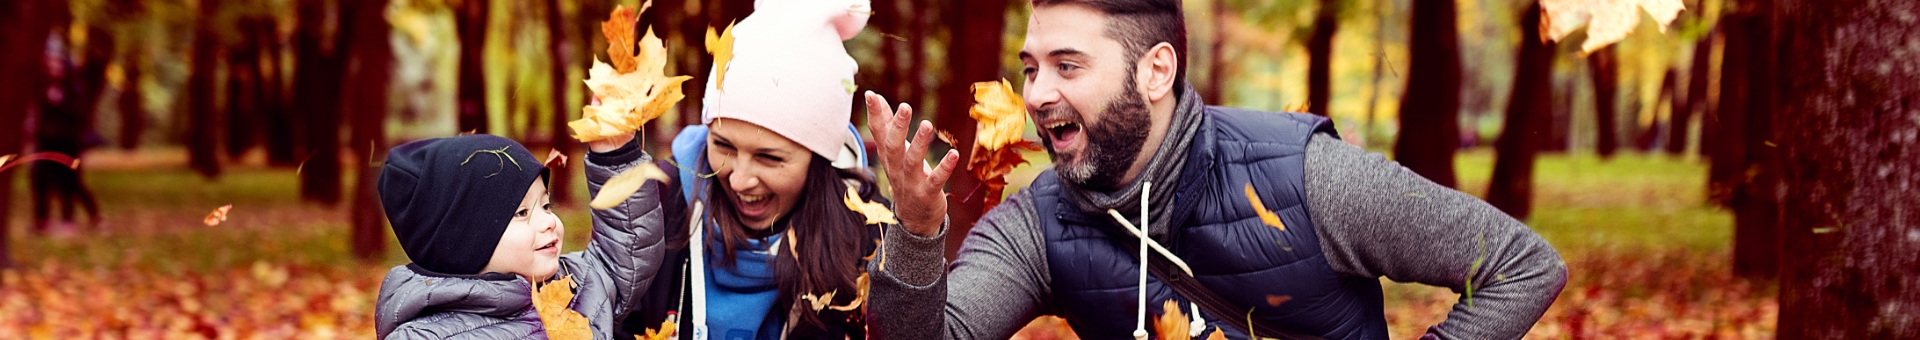 Moving to Canada as a parent means having to plan ahead. Our extensive parental guide has everything you need to know about immigrating to Canada as a family.